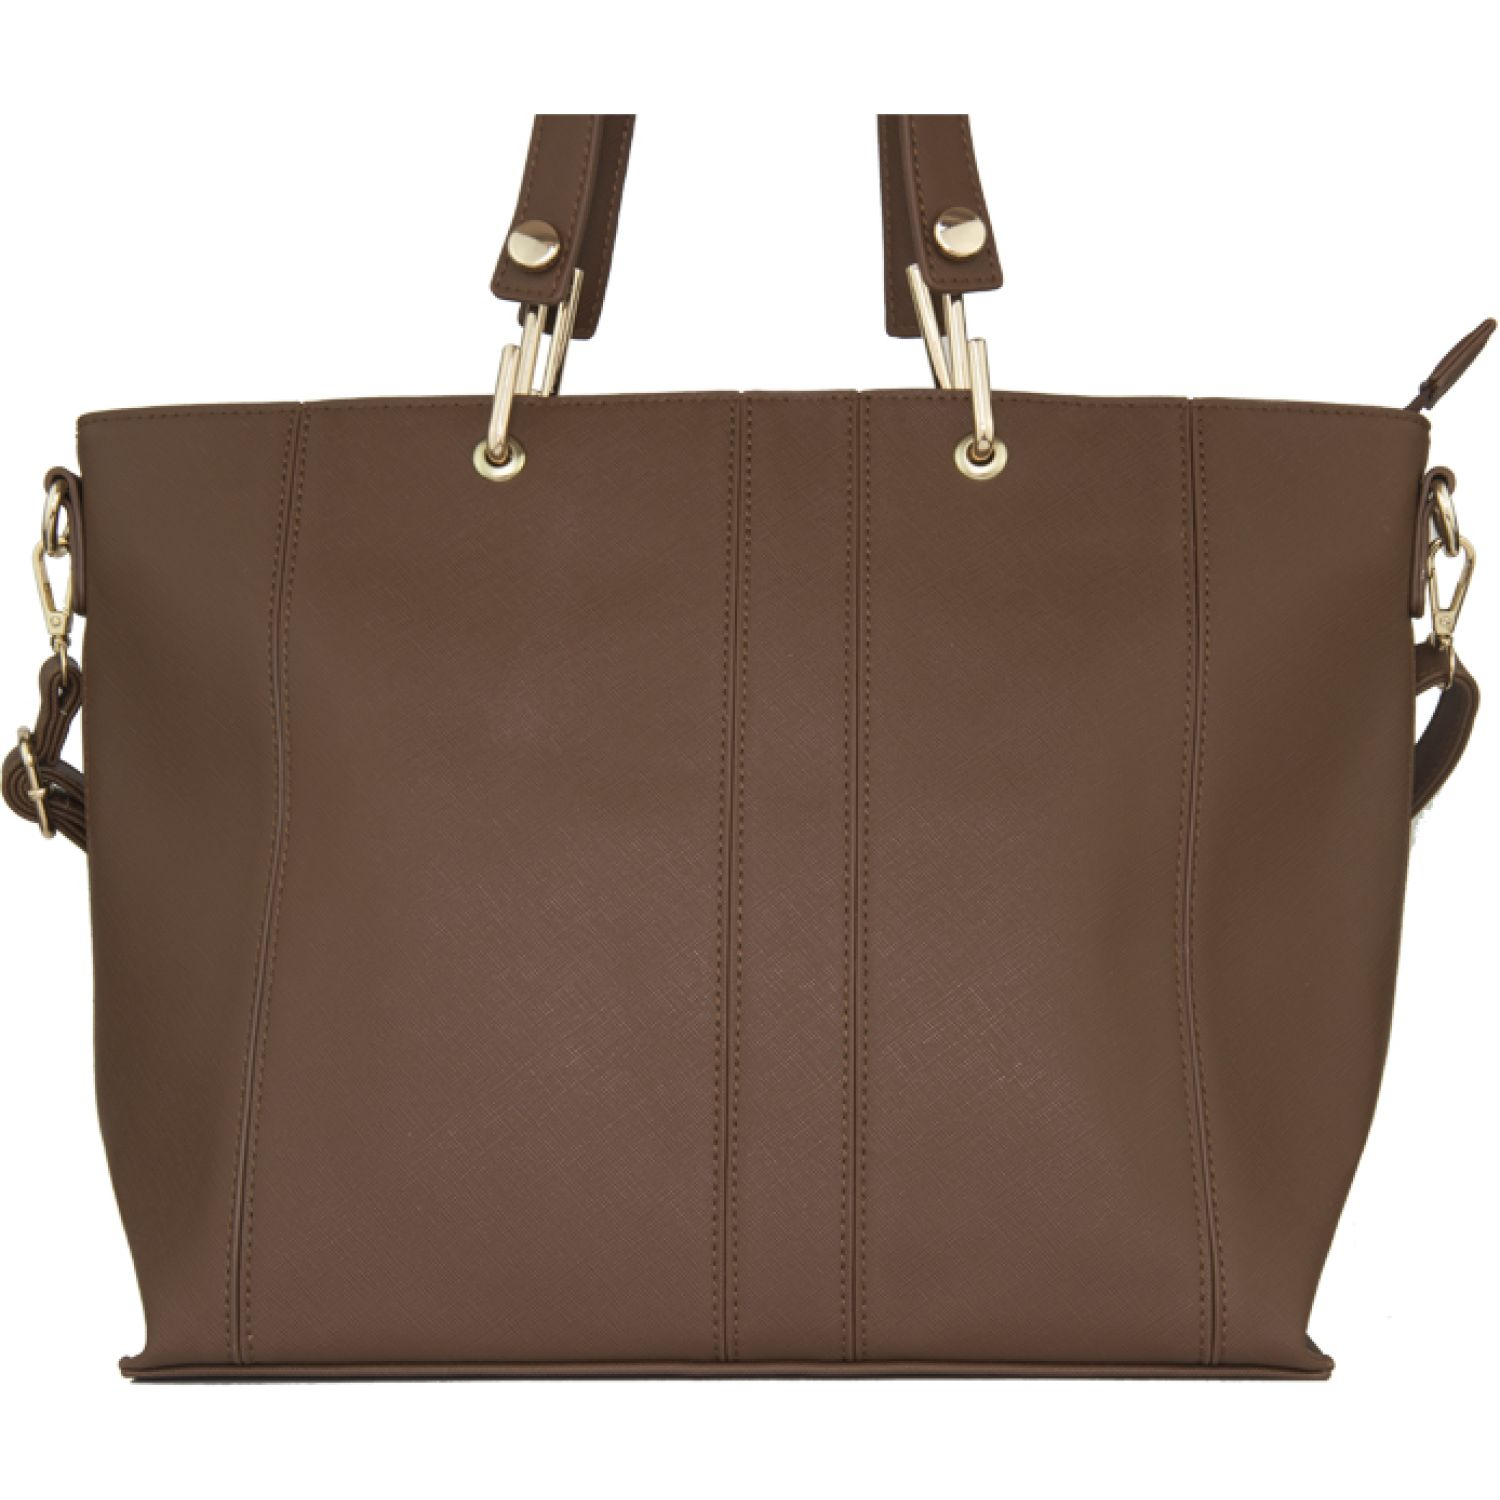 Impuls gina08 Marron Totes